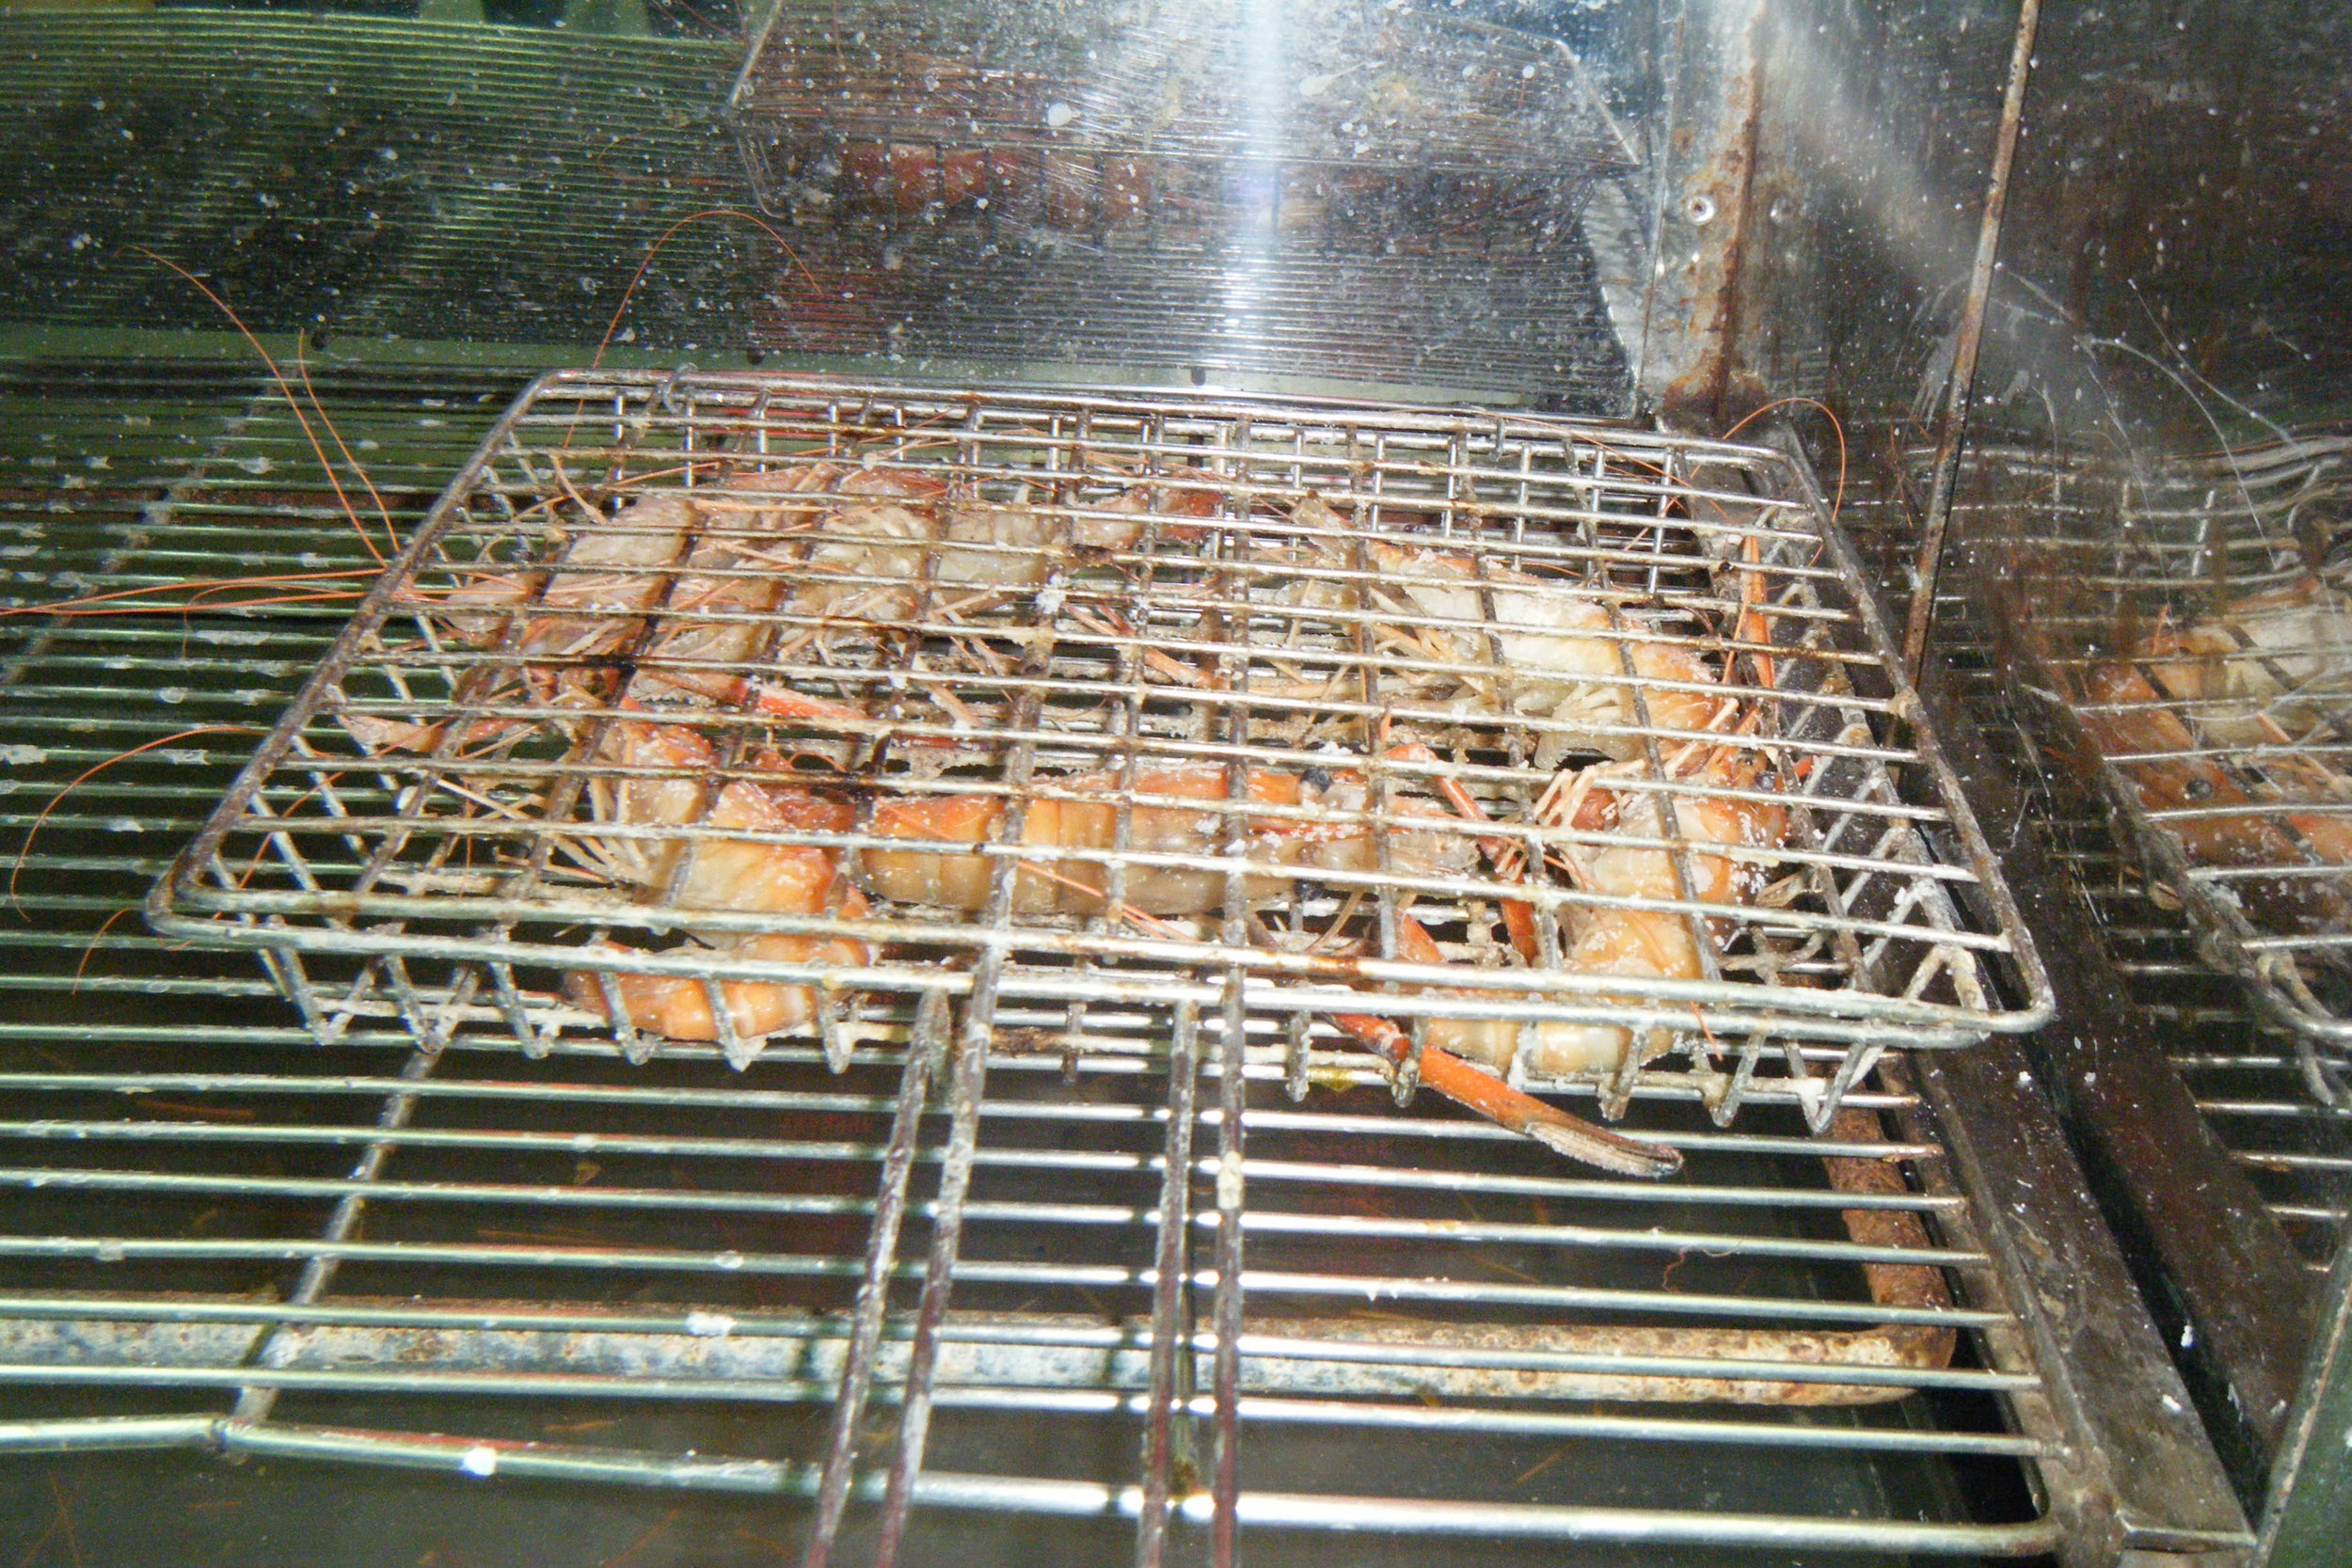 grilled shrimp at shrimping place.jpg